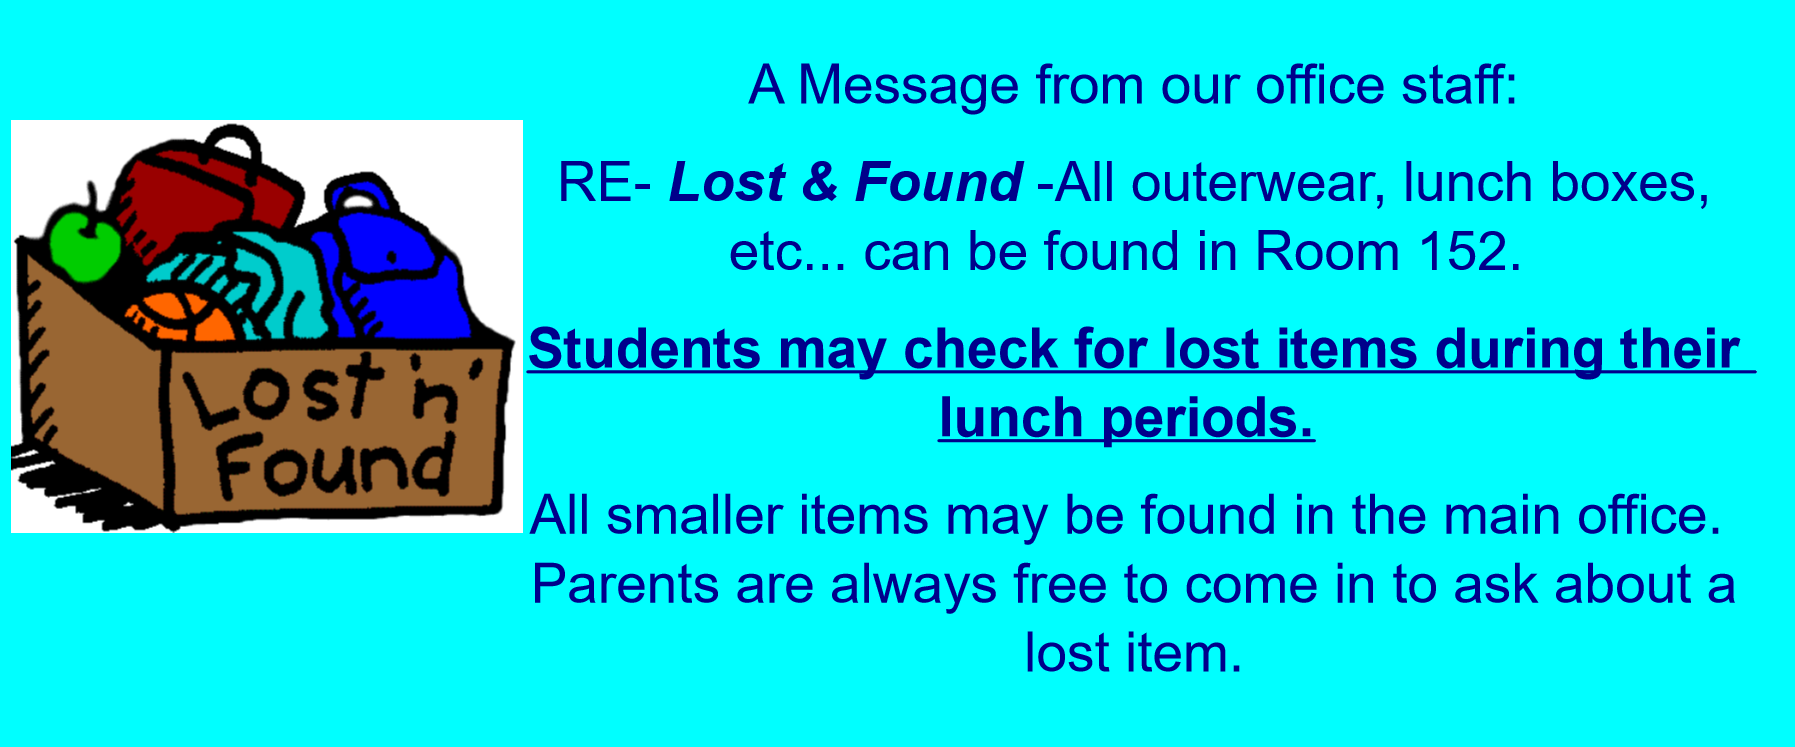 Lost and Found Announcement